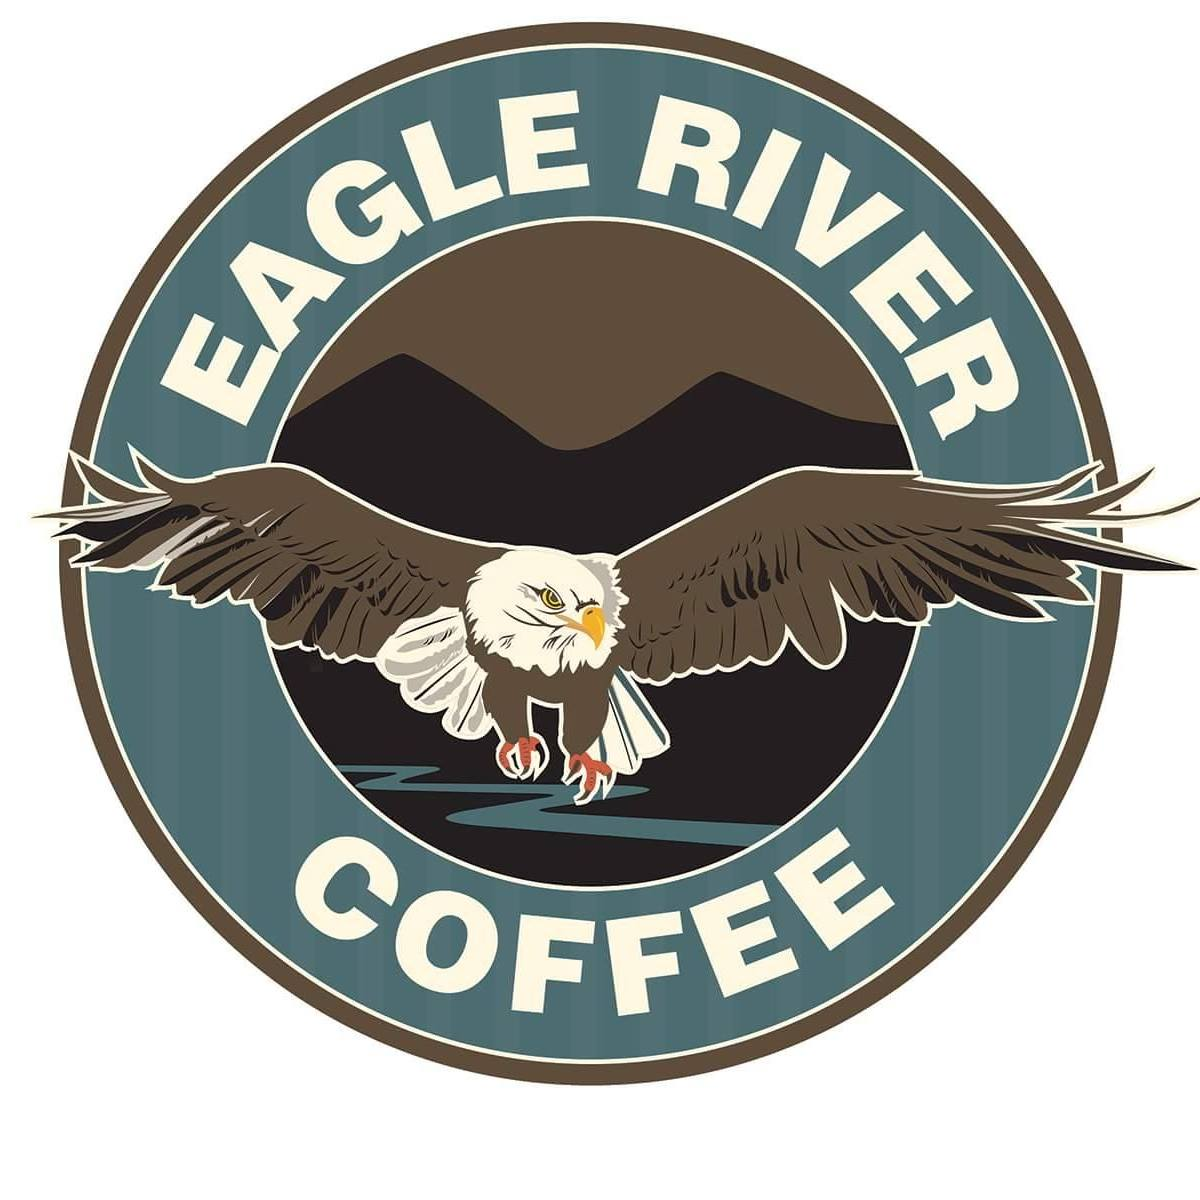 Eagle River Coffee.jpg